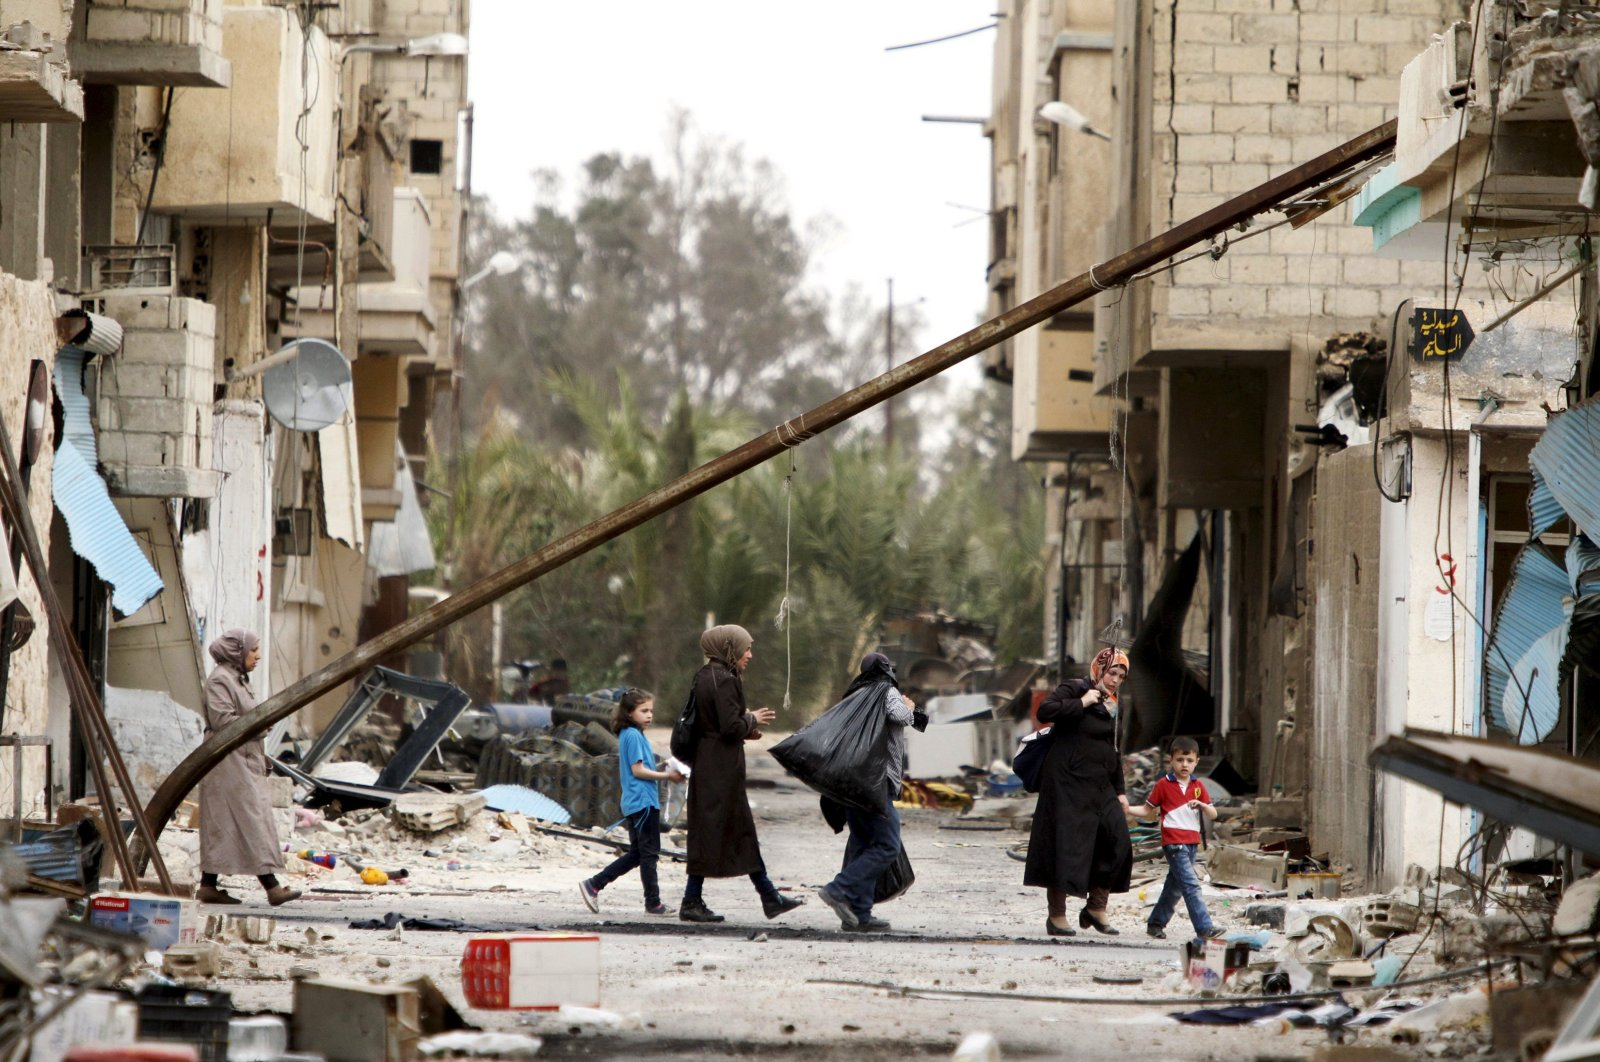 Residents carry belongings they collected from their homes as they walk during a return visit to the city of Palmyra, Syria, April 9,2016. (Reuters Photo)